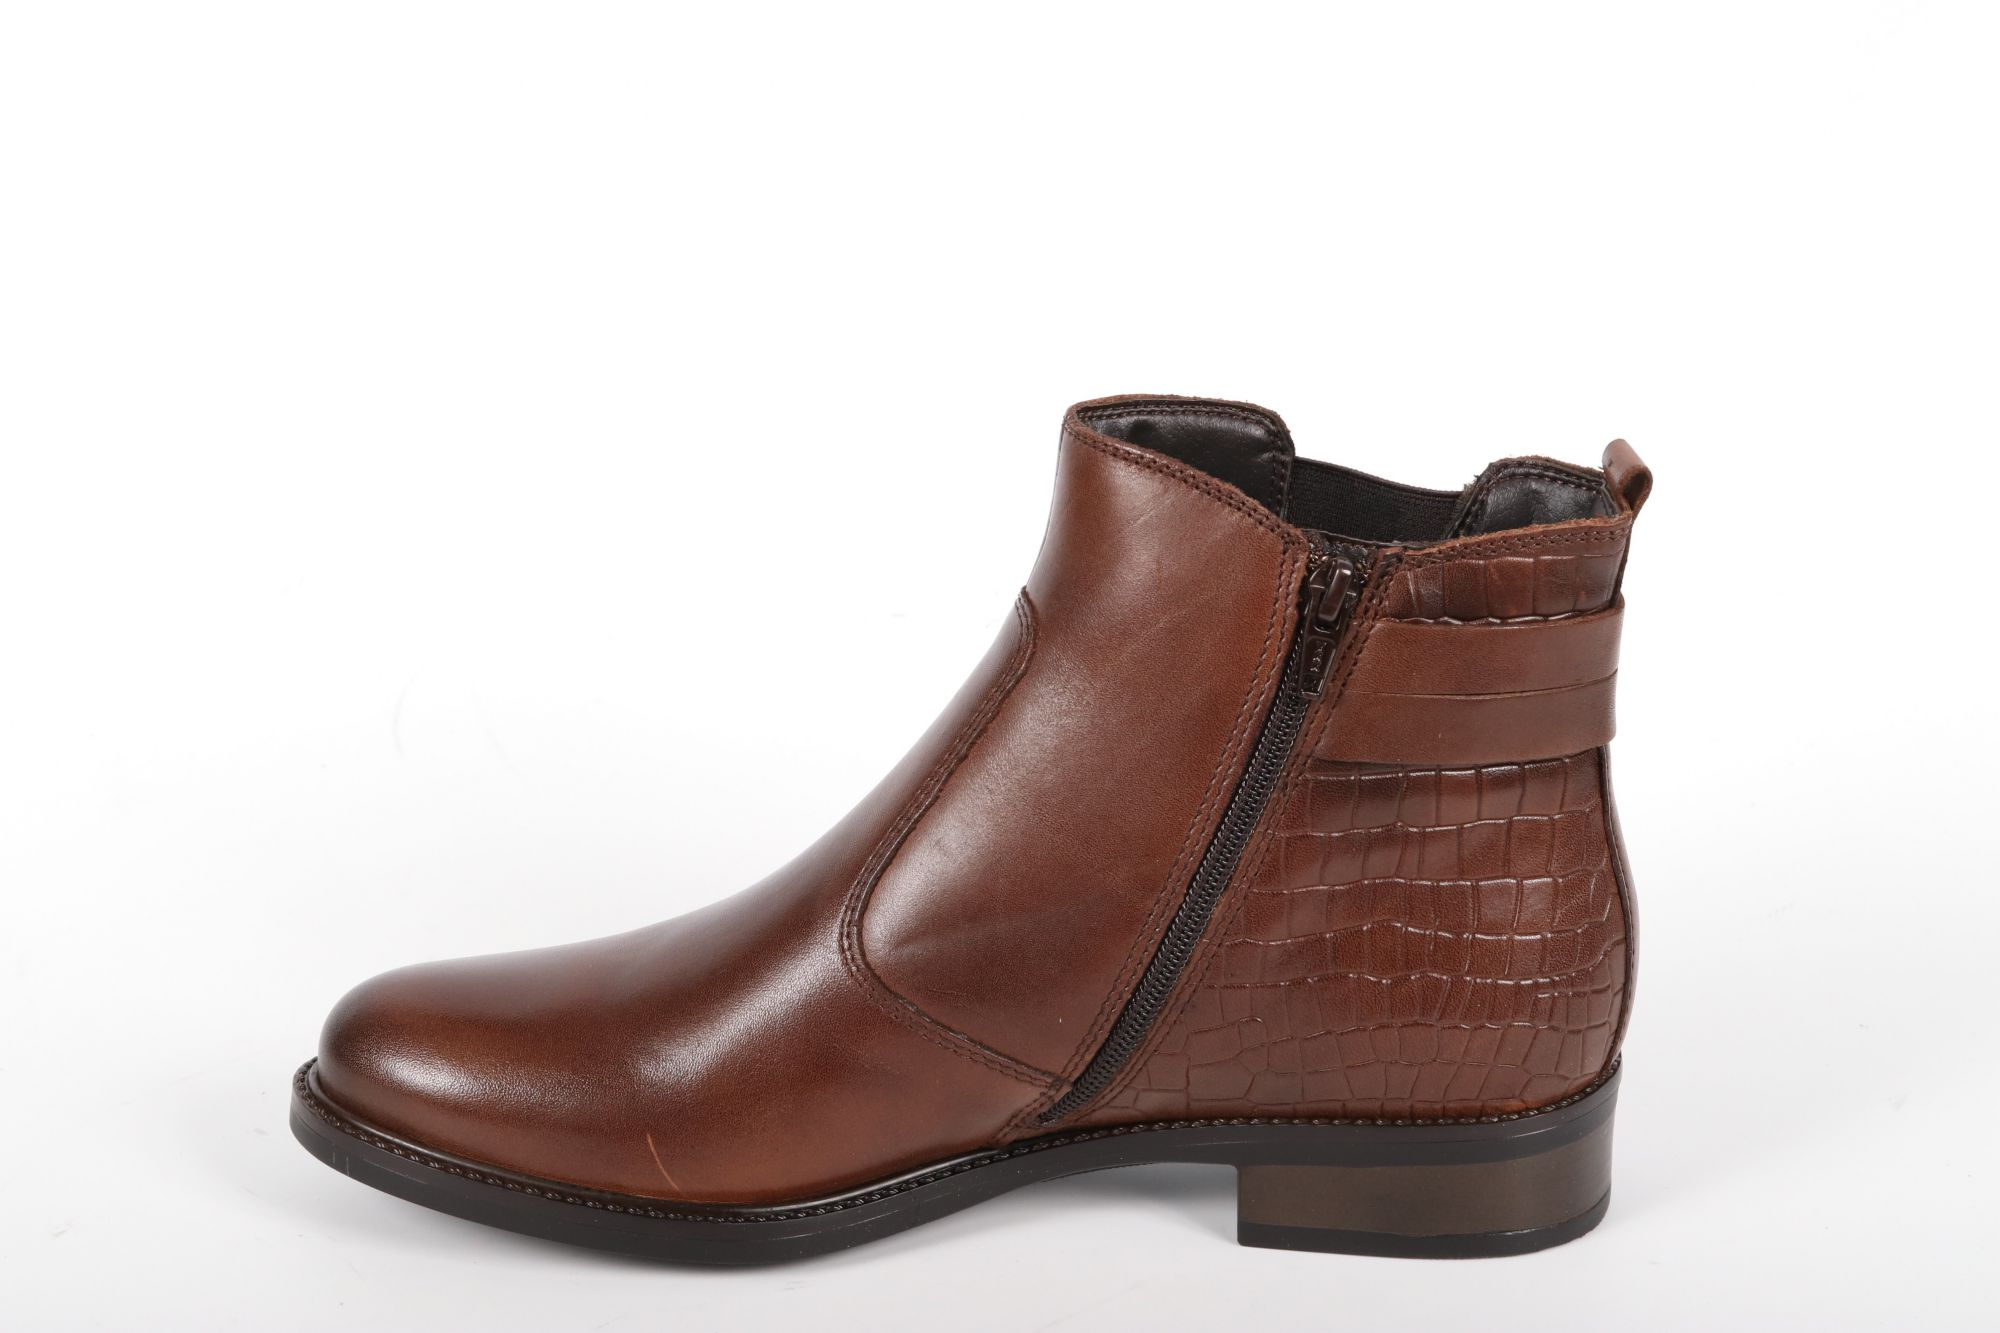 Bottines femme Tamaris 25082 Marron